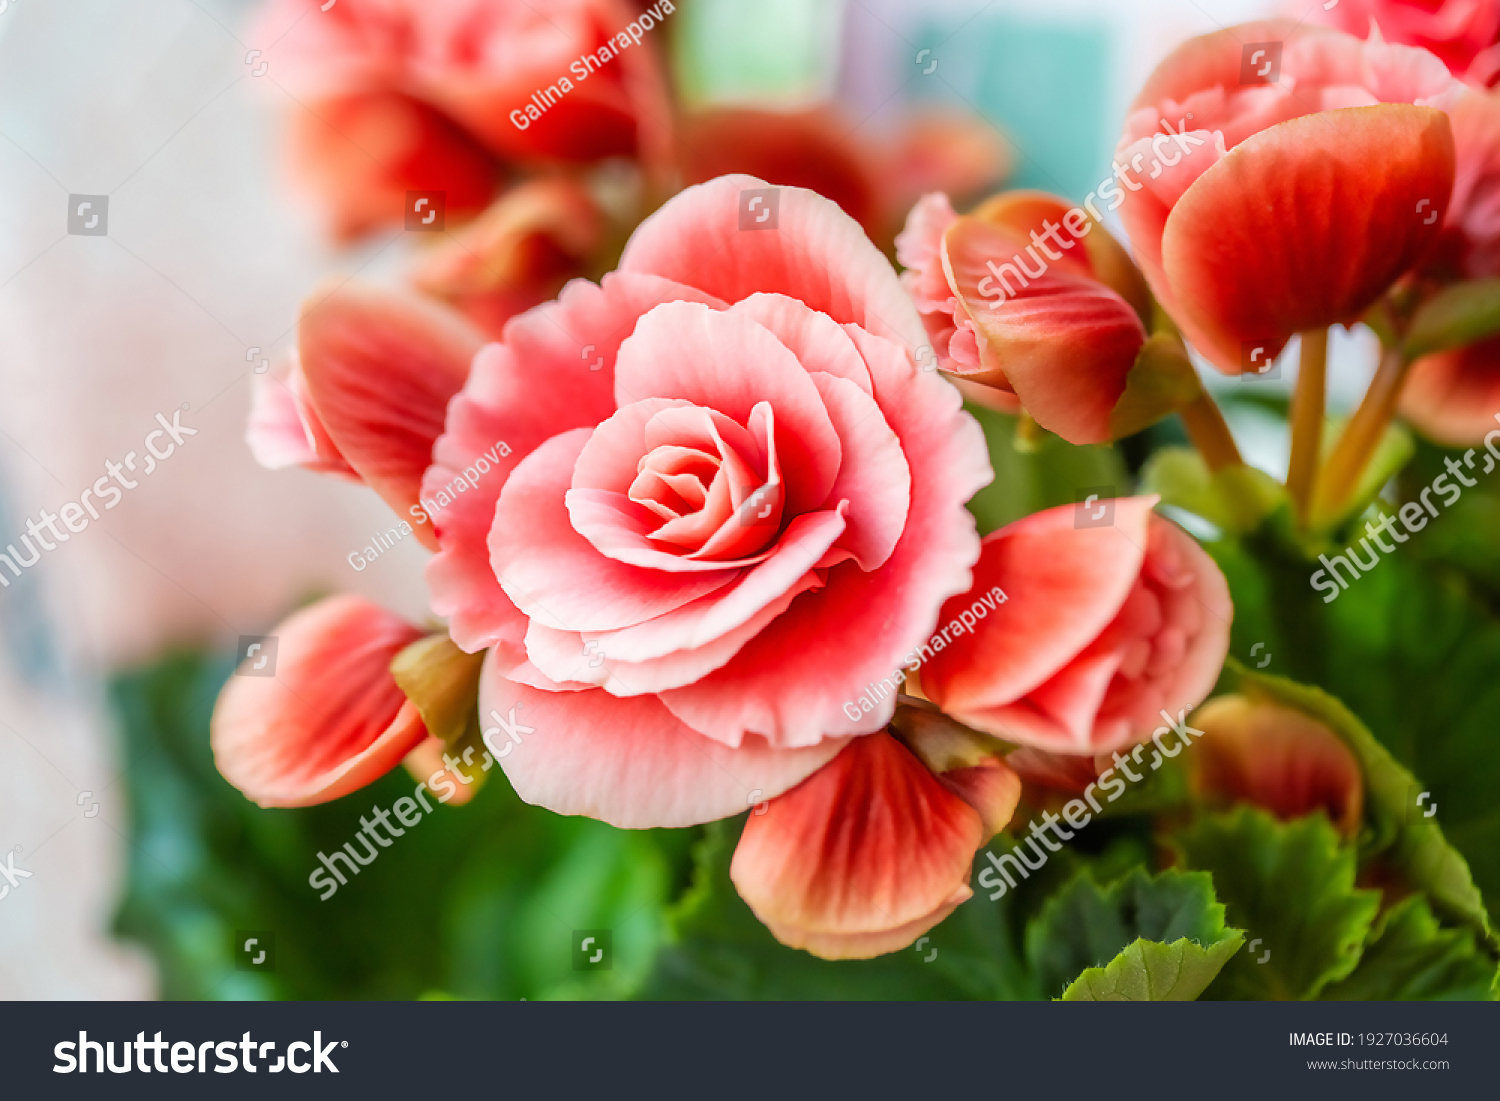 Close-up of pink begonia flowers showing their textures, patterns and details in a flower pot photographed with natural light. #1927036604